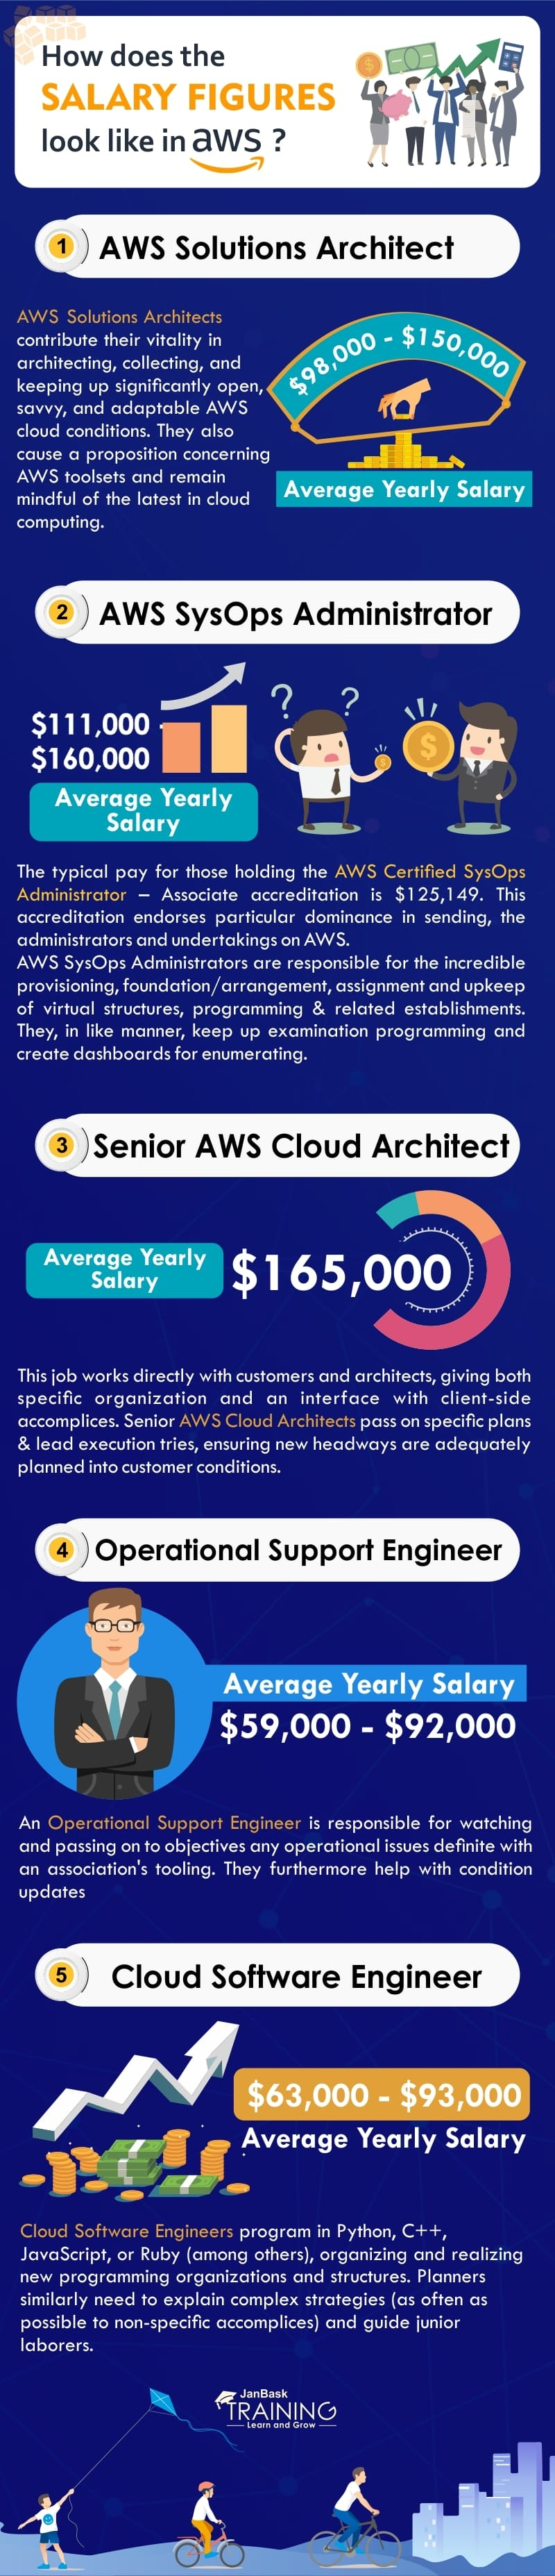 What Is The Average Salary Of AWS Certified Developer? infographic